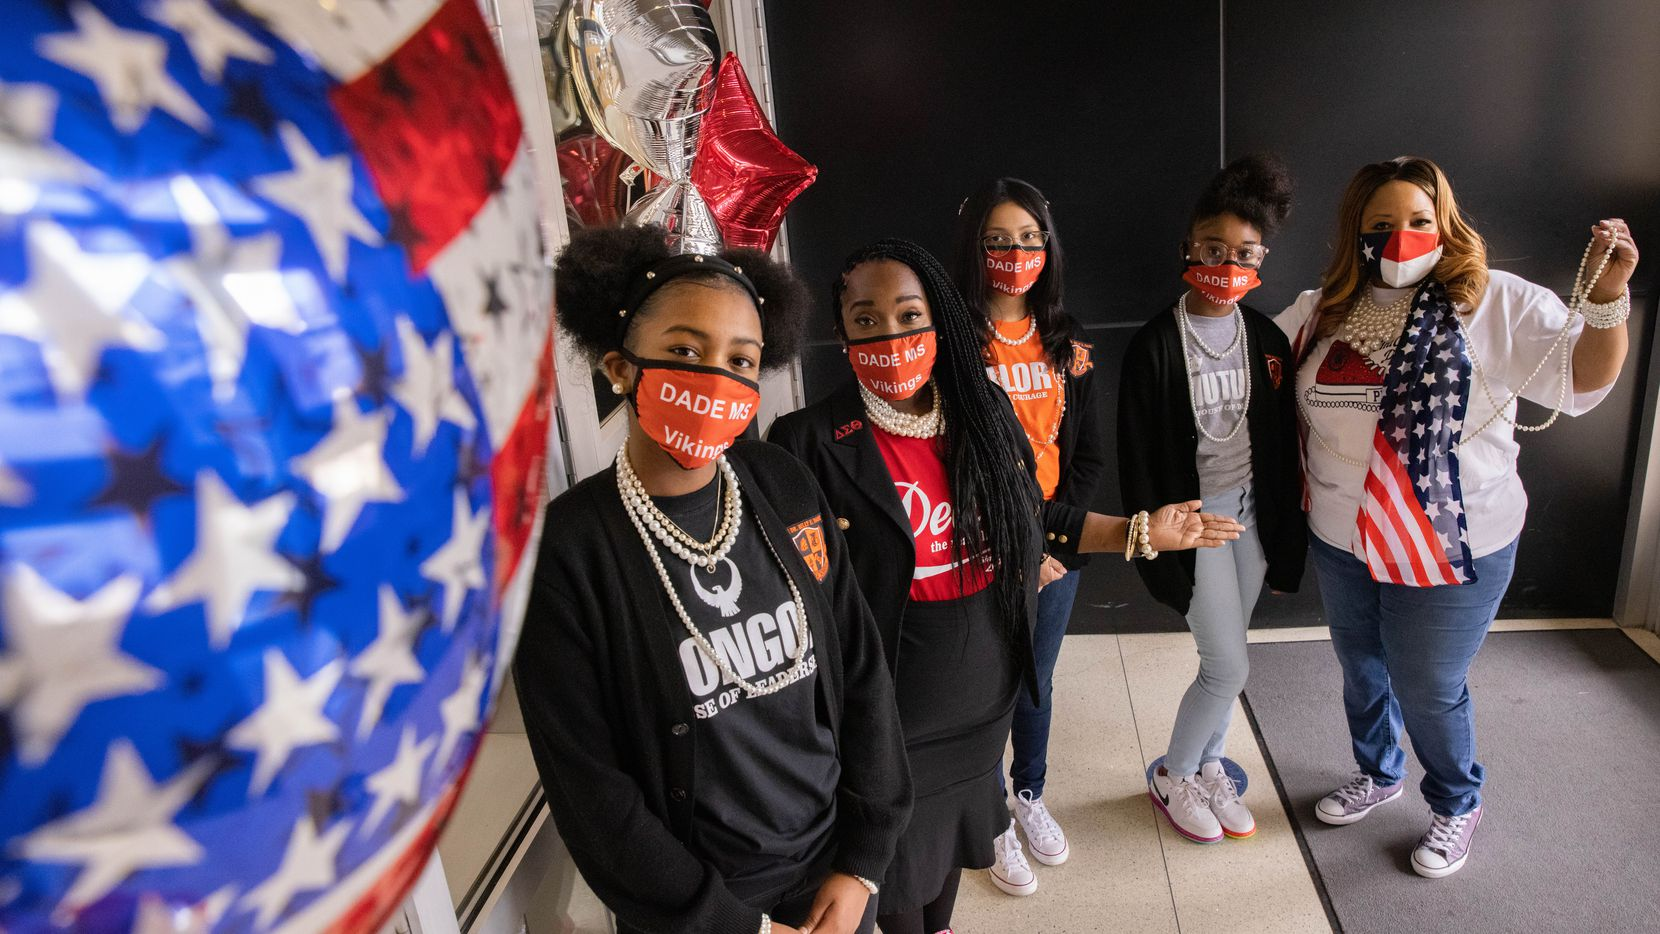 From left: Shanna Austin, Principal Rockell Stewart, Camila Saavedra, Tiambra Hunt and Campus Coordinator Vonda Pipkin pose for a photo at Billy Earl Dade Middle School in Dallas on Inauguration Day. Students and staff at the school wore Chucks and pearls to celebrate Kamala Harris, the first woman of color to be sworn in as vice president.